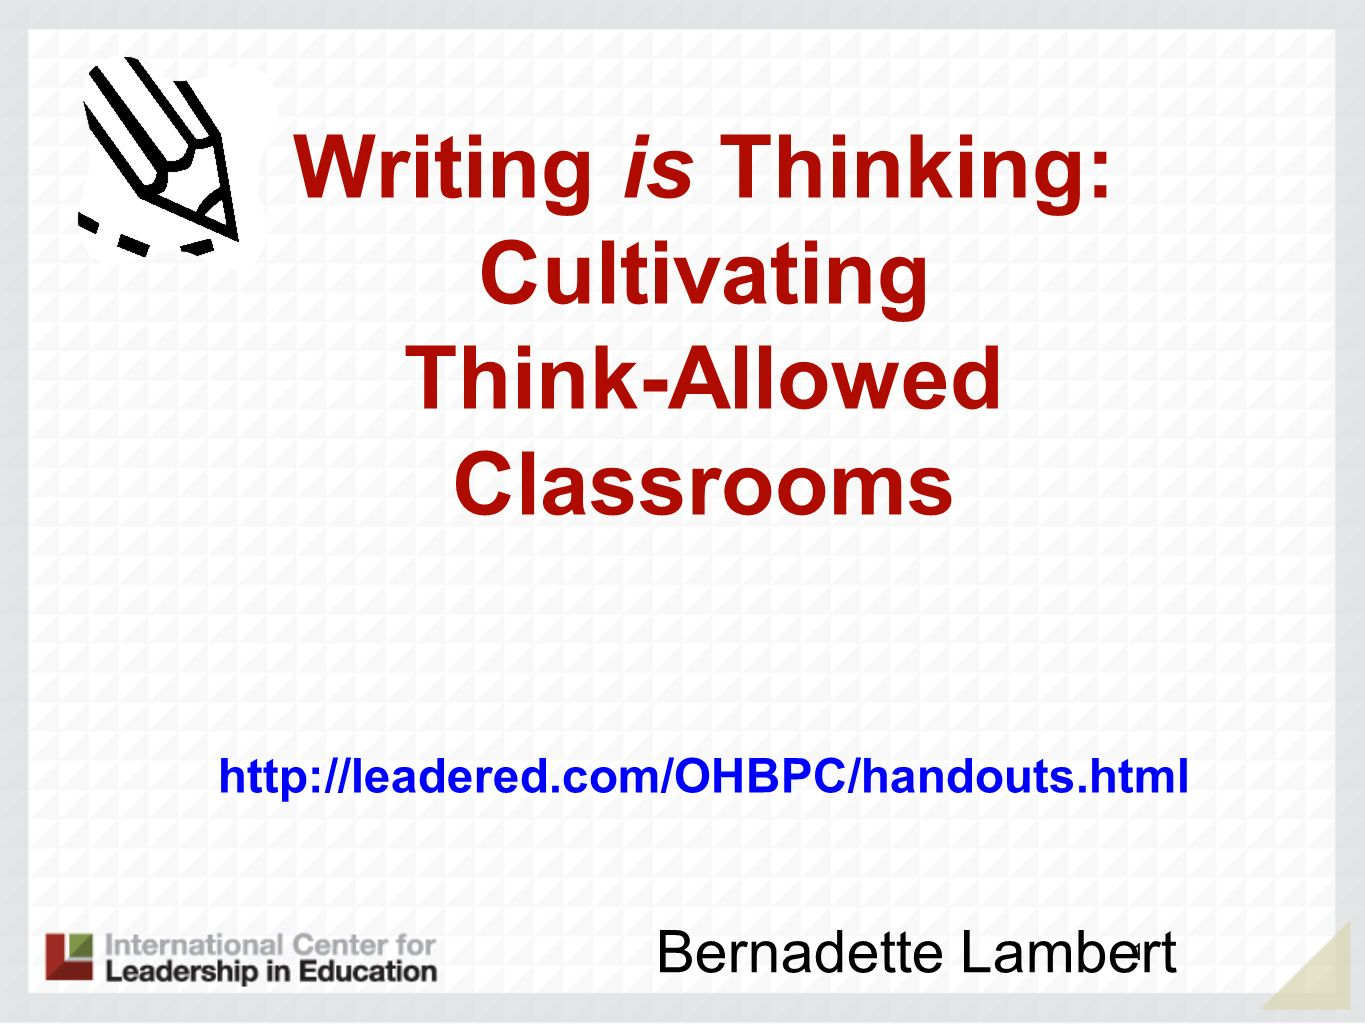 Writing is Thinking: Cultivating Think-Allowed Classrooms http://leadered.com/OHBPC/handouts.html